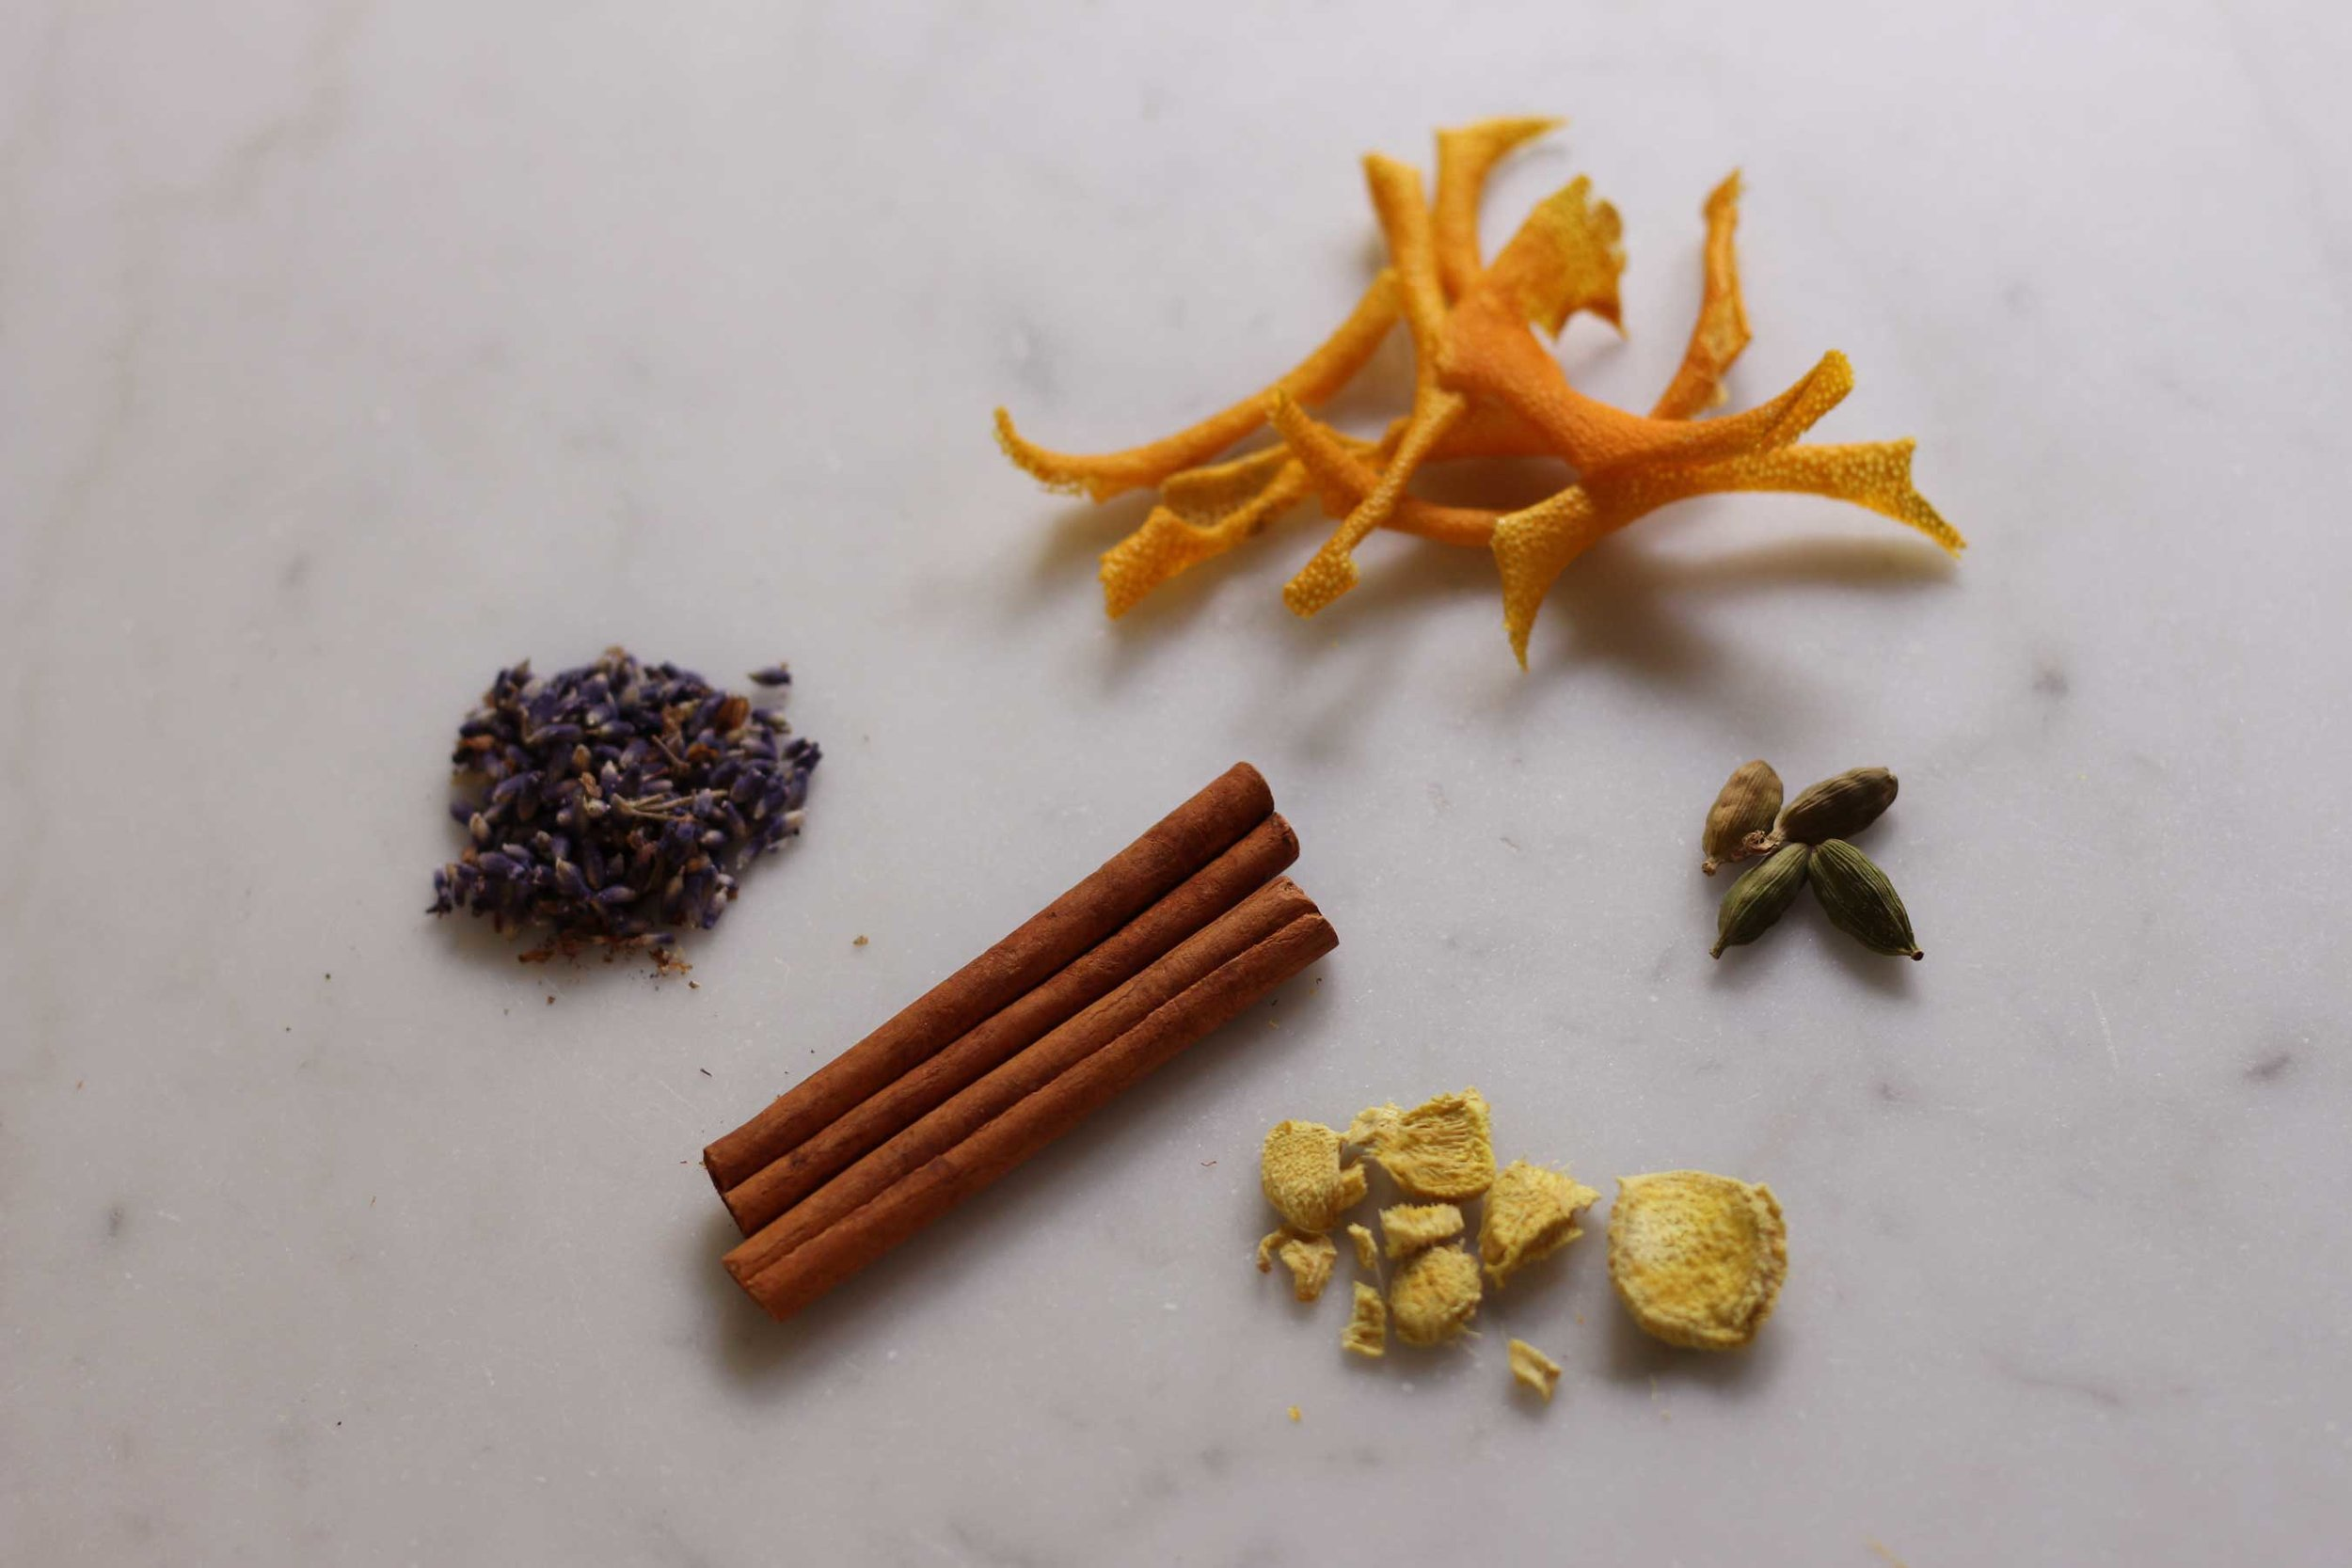 For a fresher holiday scent blend in your home, pocket or dresser, try this combination of Orange peel, lavender, cinnamon, ginger and cardamom. It reads holiday, but with a lighter touch. Recipe at Thread & Whisk.